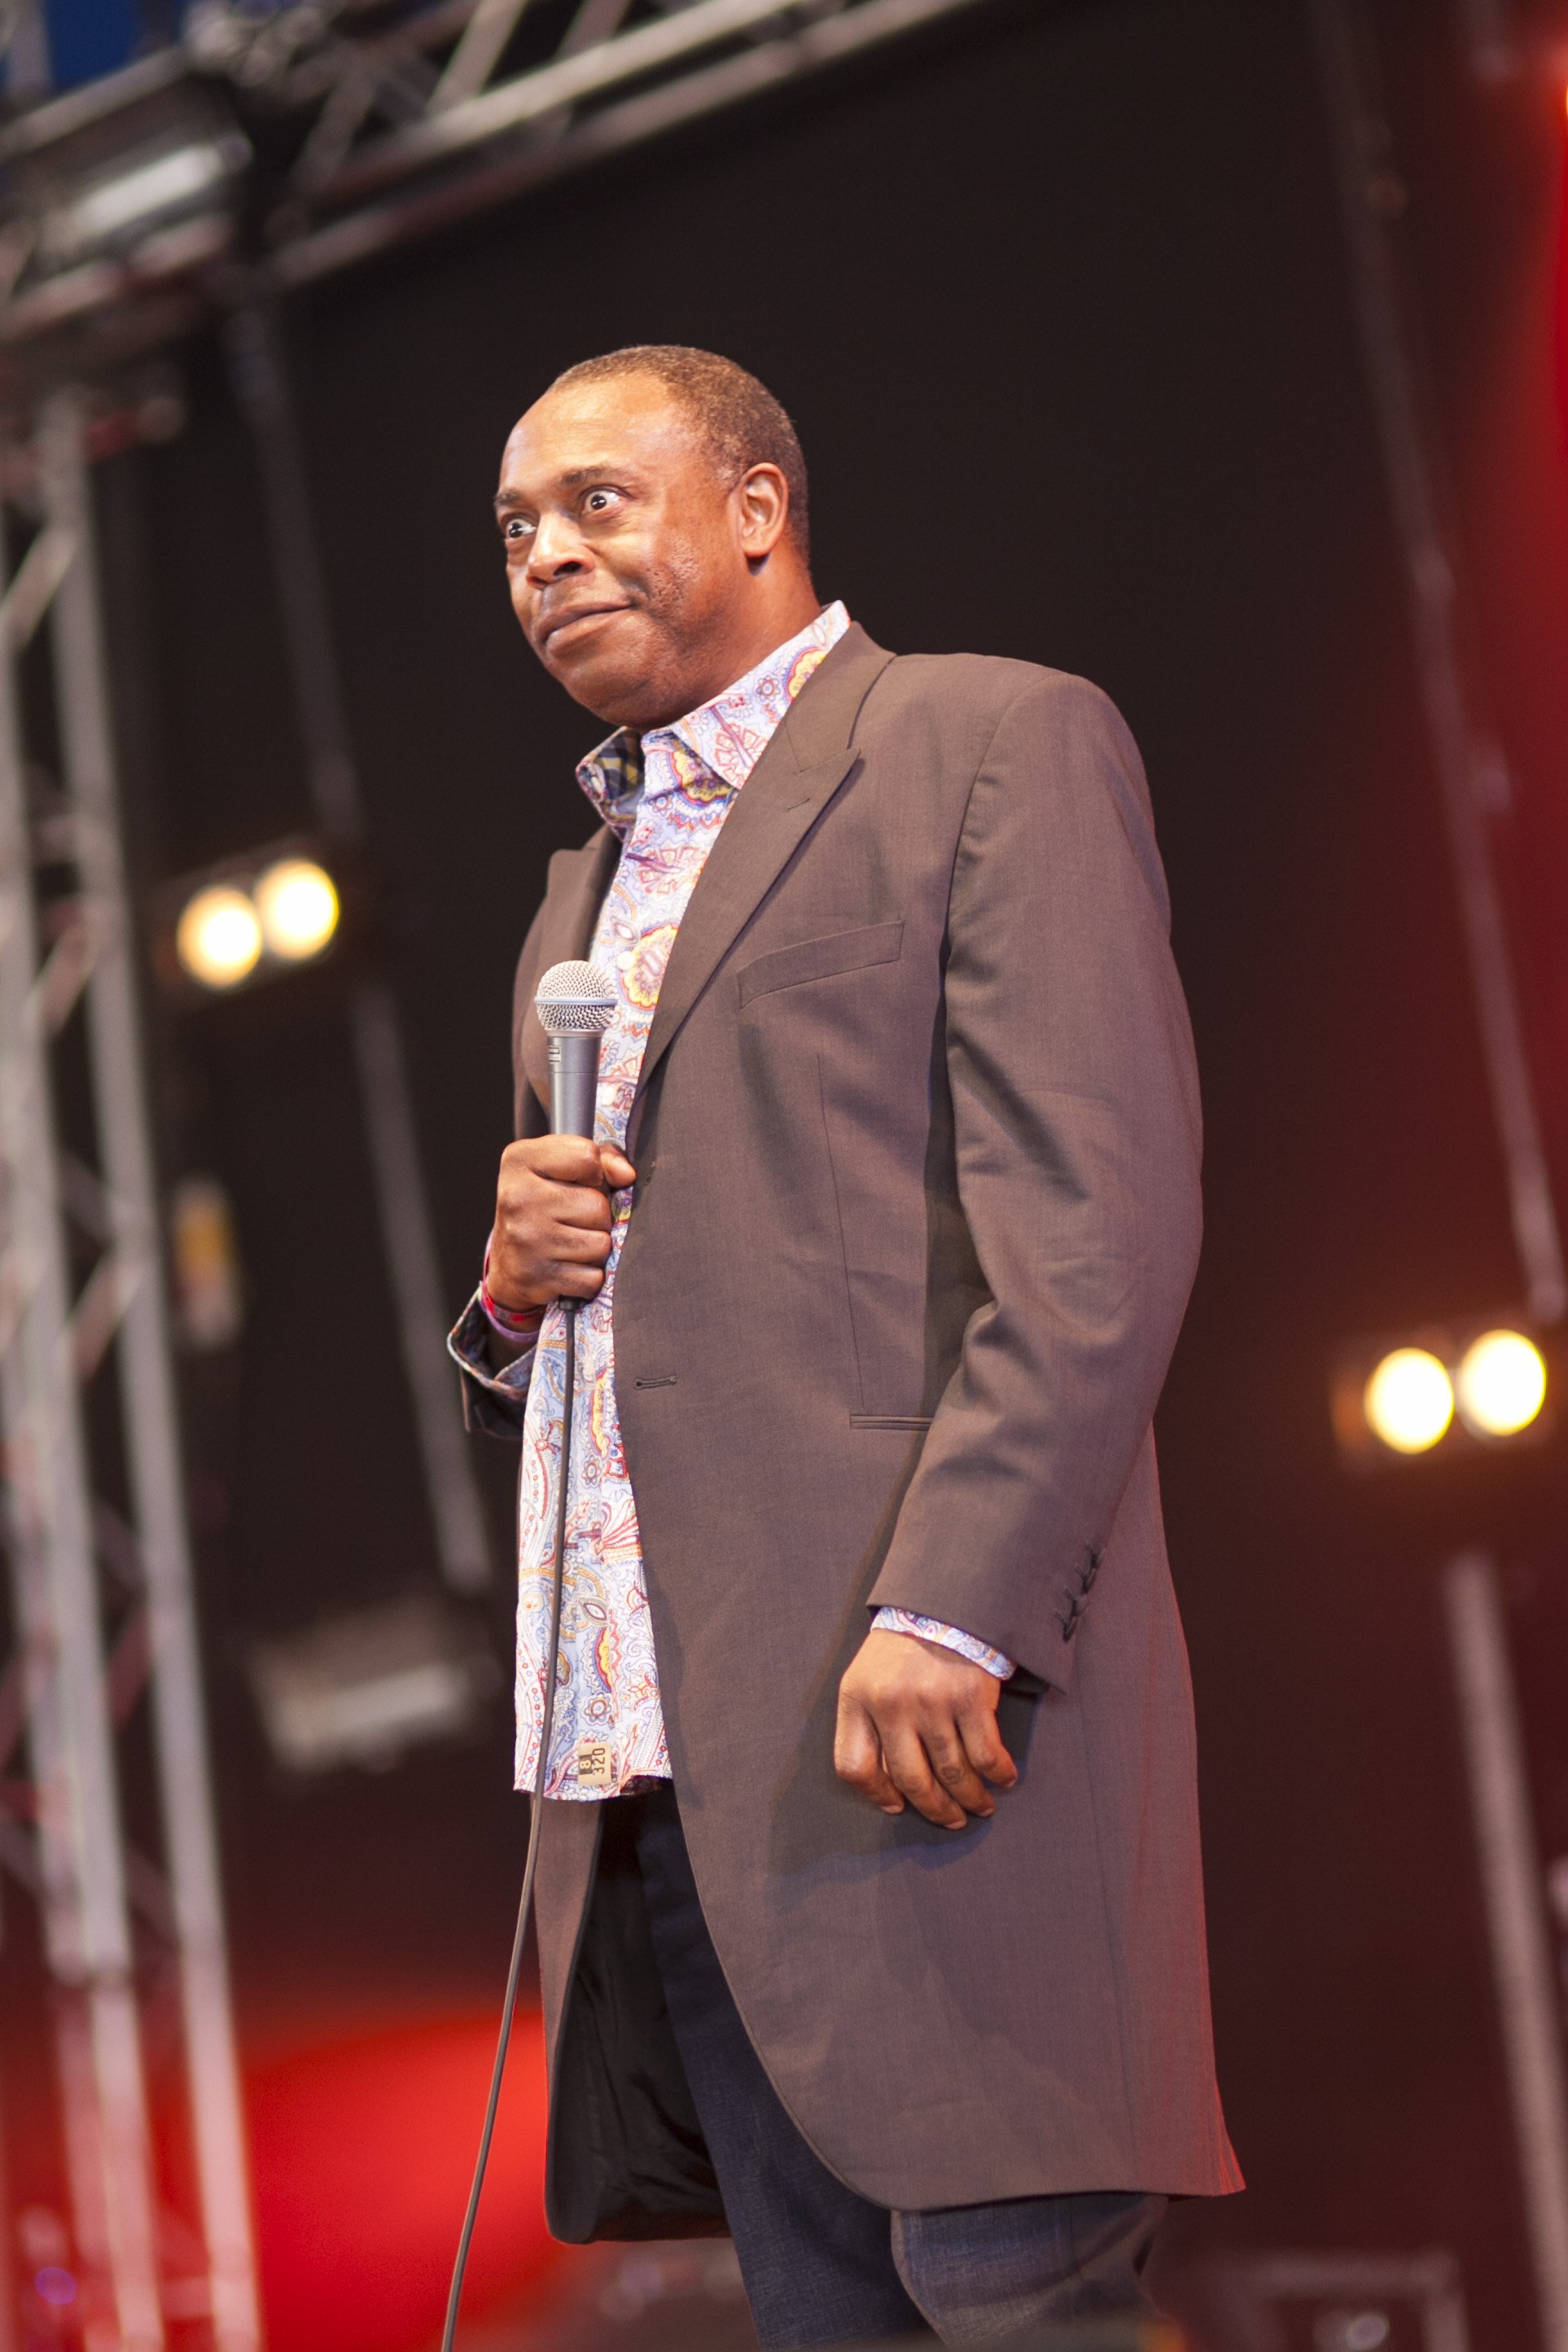 Actor Michael Winslow performing at Camp Bestival at Lulworth Castle in Wareham, England   Photo: Getty Images